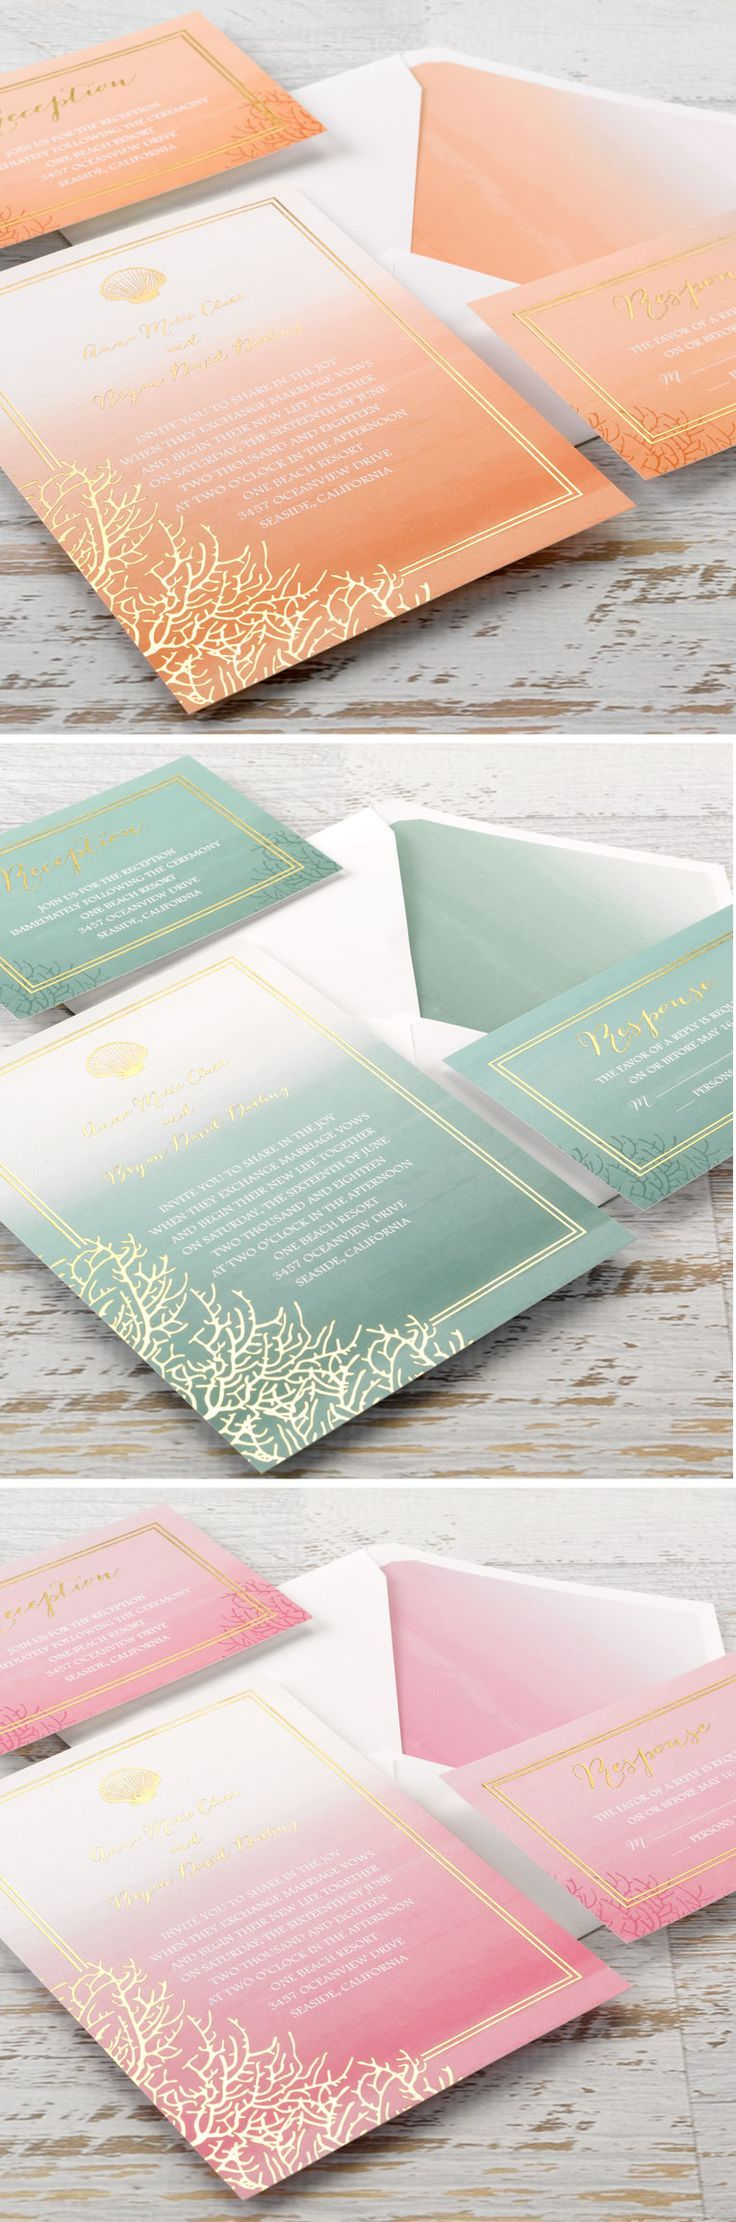 Foil stamped beach theme wedding invitations from Colin